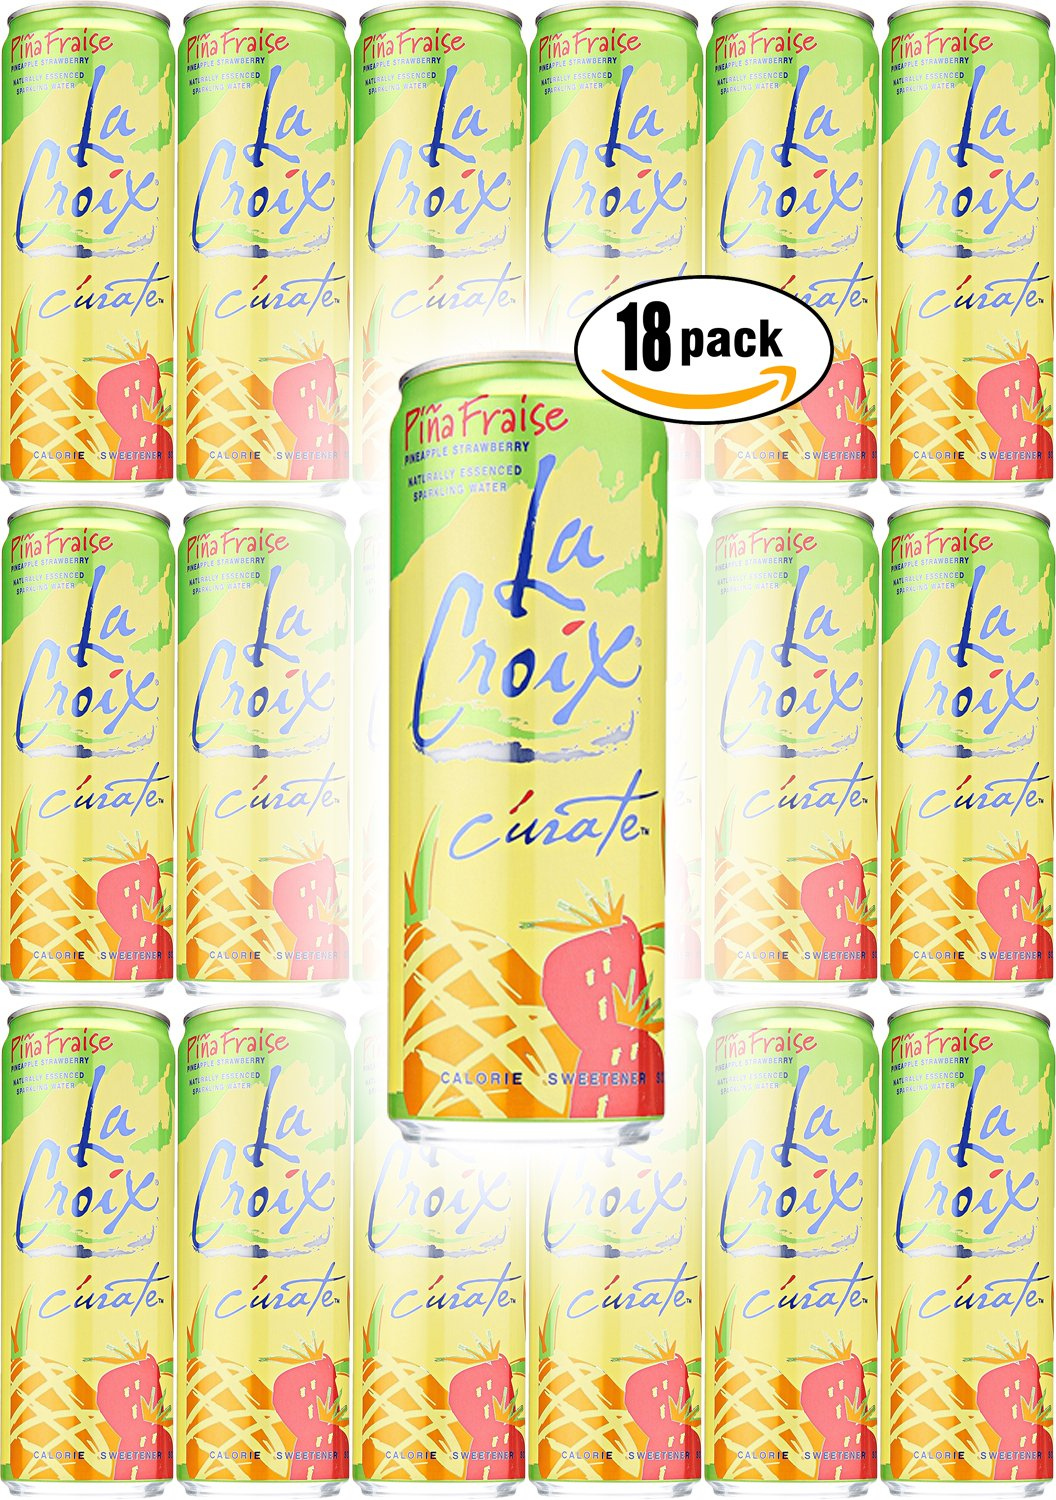 La Croix Pina Fraise, Pineapple Strawberry Flavored Naturally Essenced Sparkling Water, 12oz Tall Can (Pack of 18, Total of 216 Oz) by La Croix